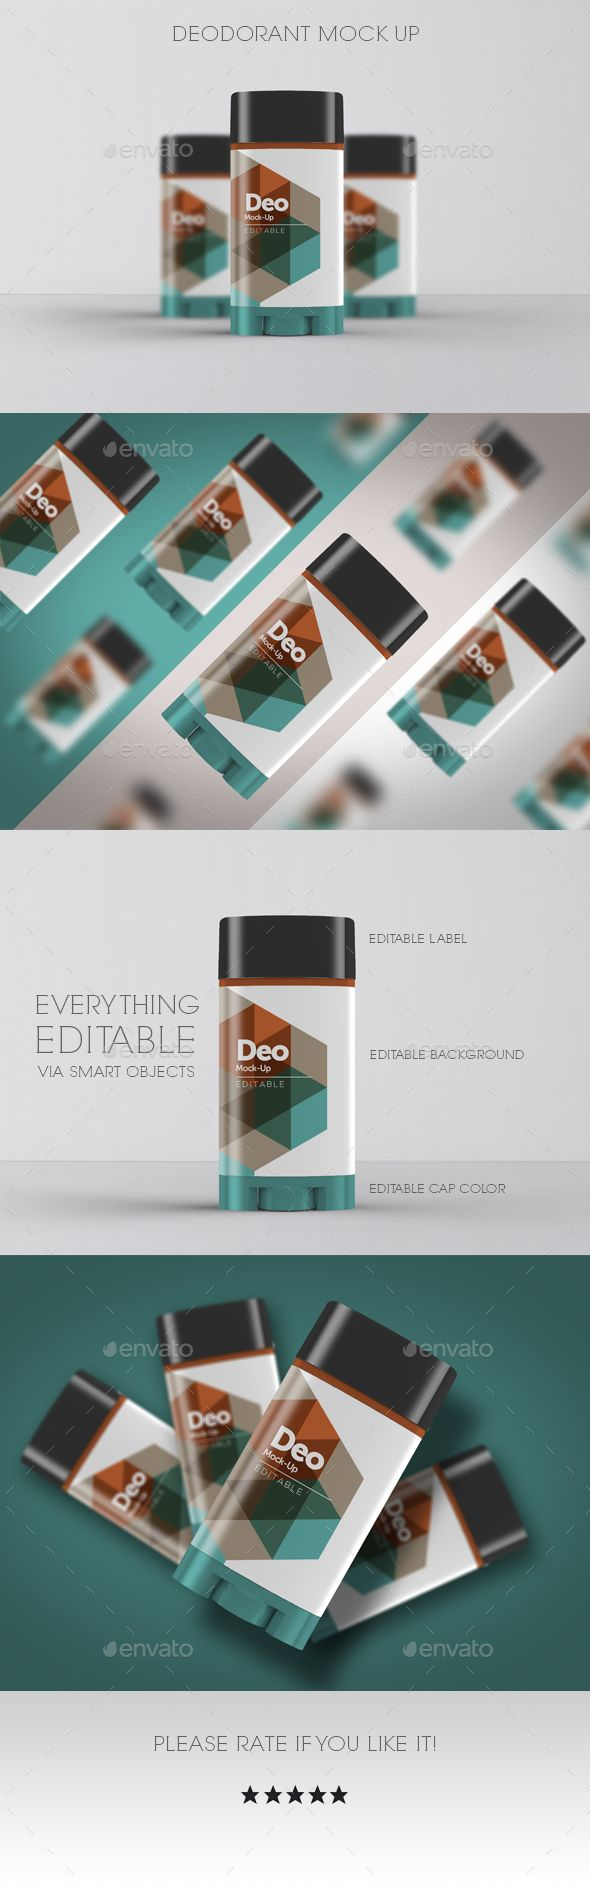 Deodorant Mock Up - Beauty Packaging